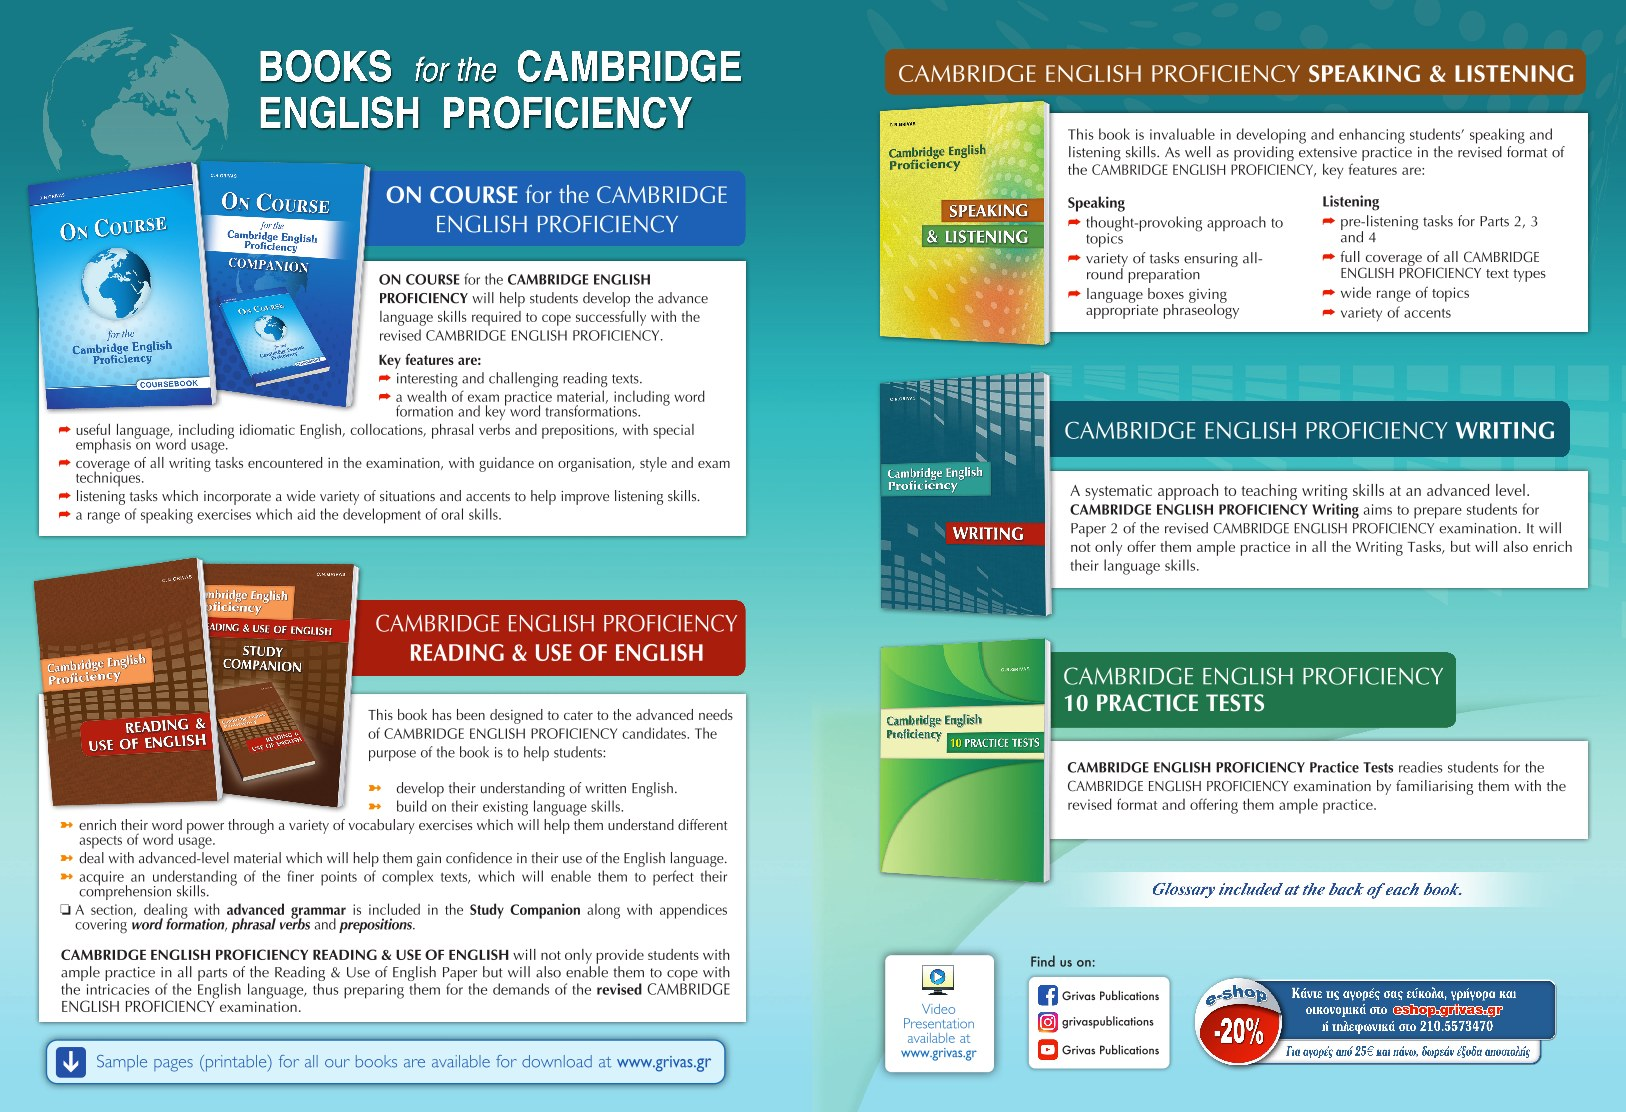 Cambridge English Proficiency